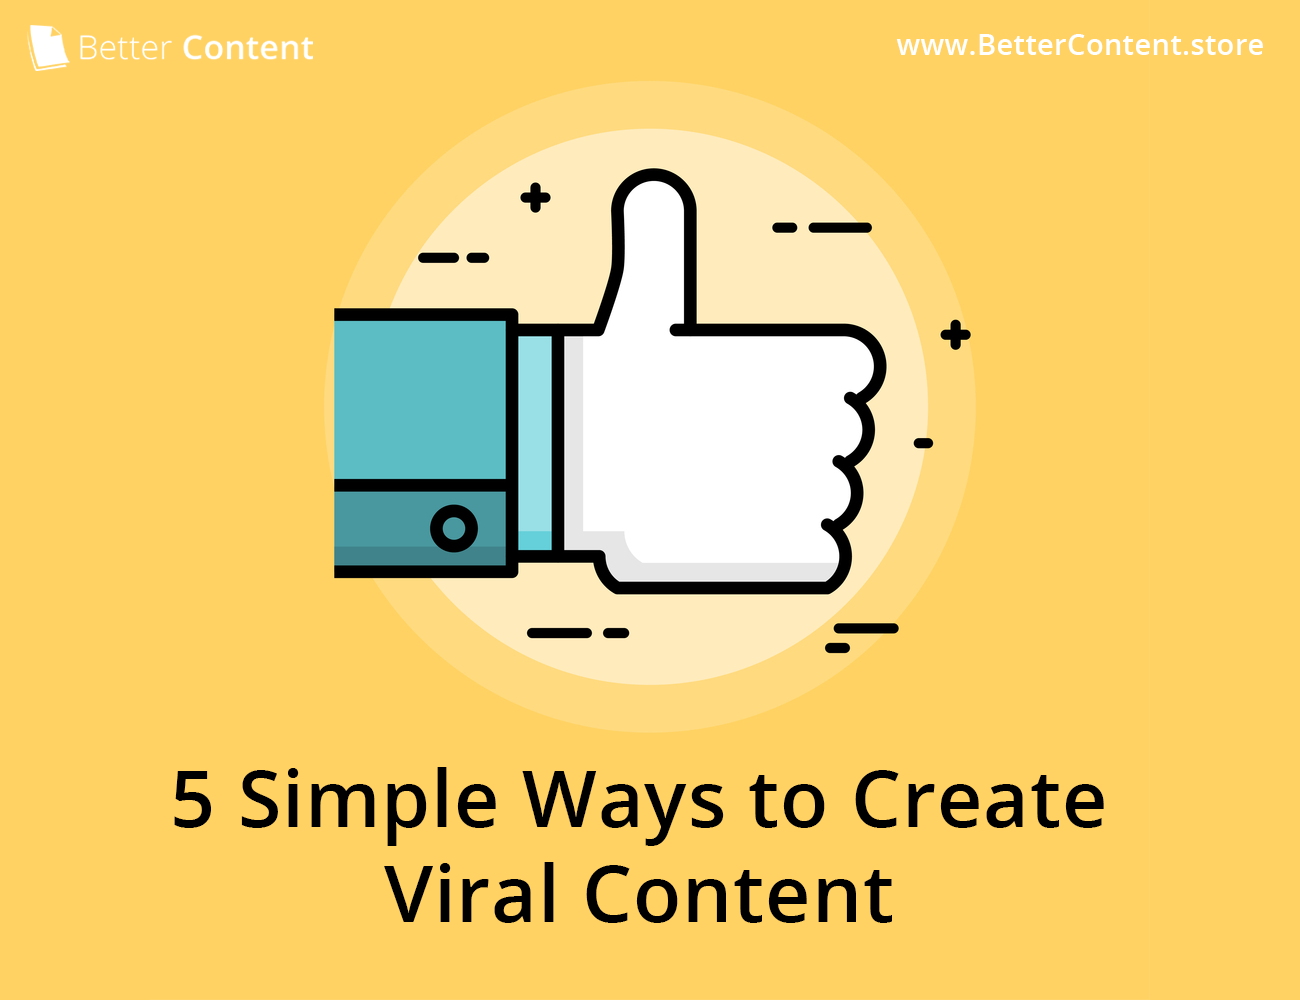 5 Simple Ways to Create Viral Content